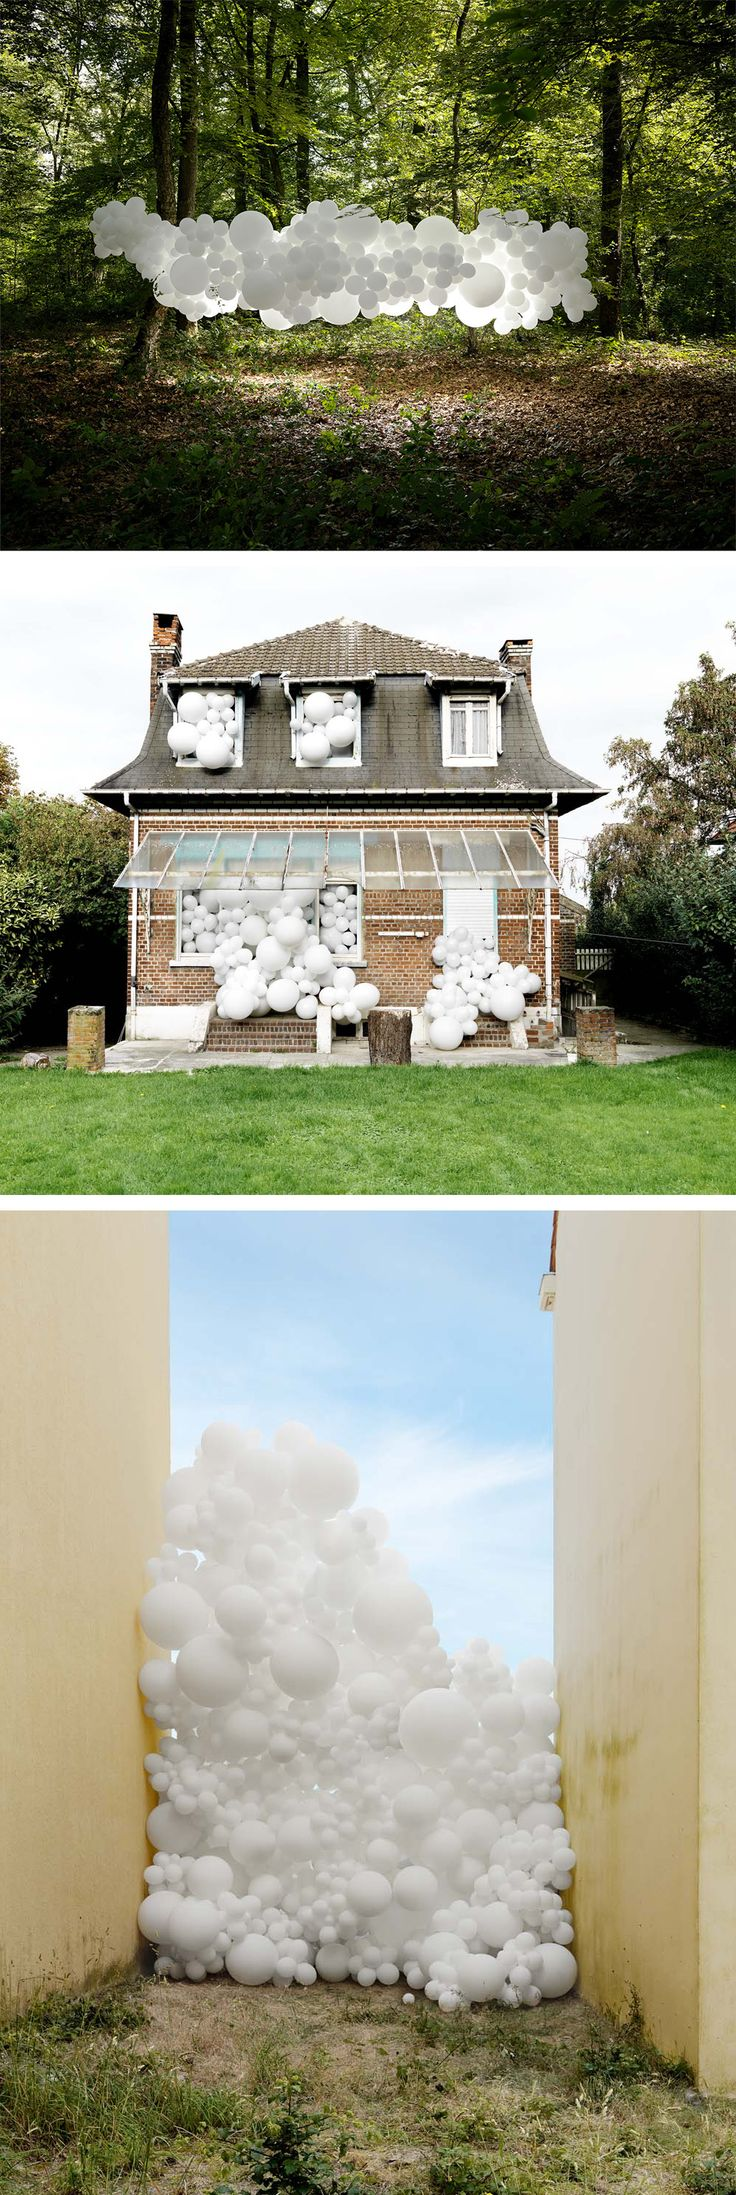 Clusters of White Balloons Photographed Invading Landscapes and Homes by Charles Pétillon